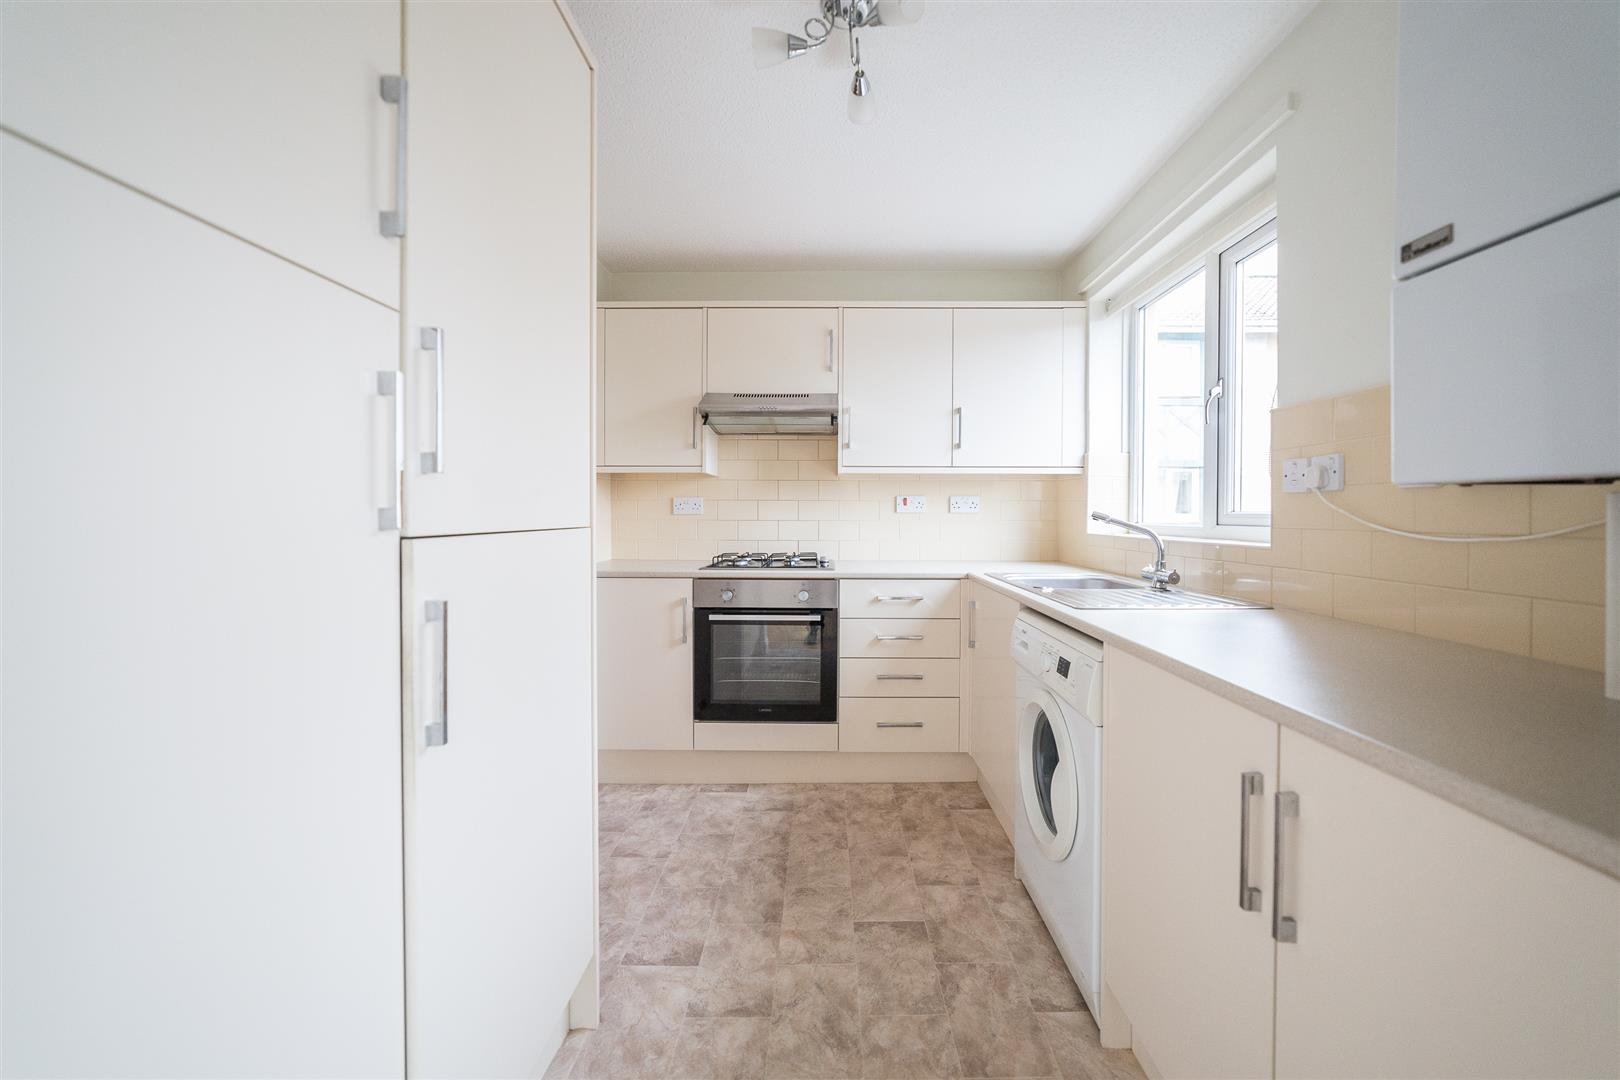 2 bed apartment to rent in Newcastle Upon Tyne, NE5 4LF  - Property Image 3